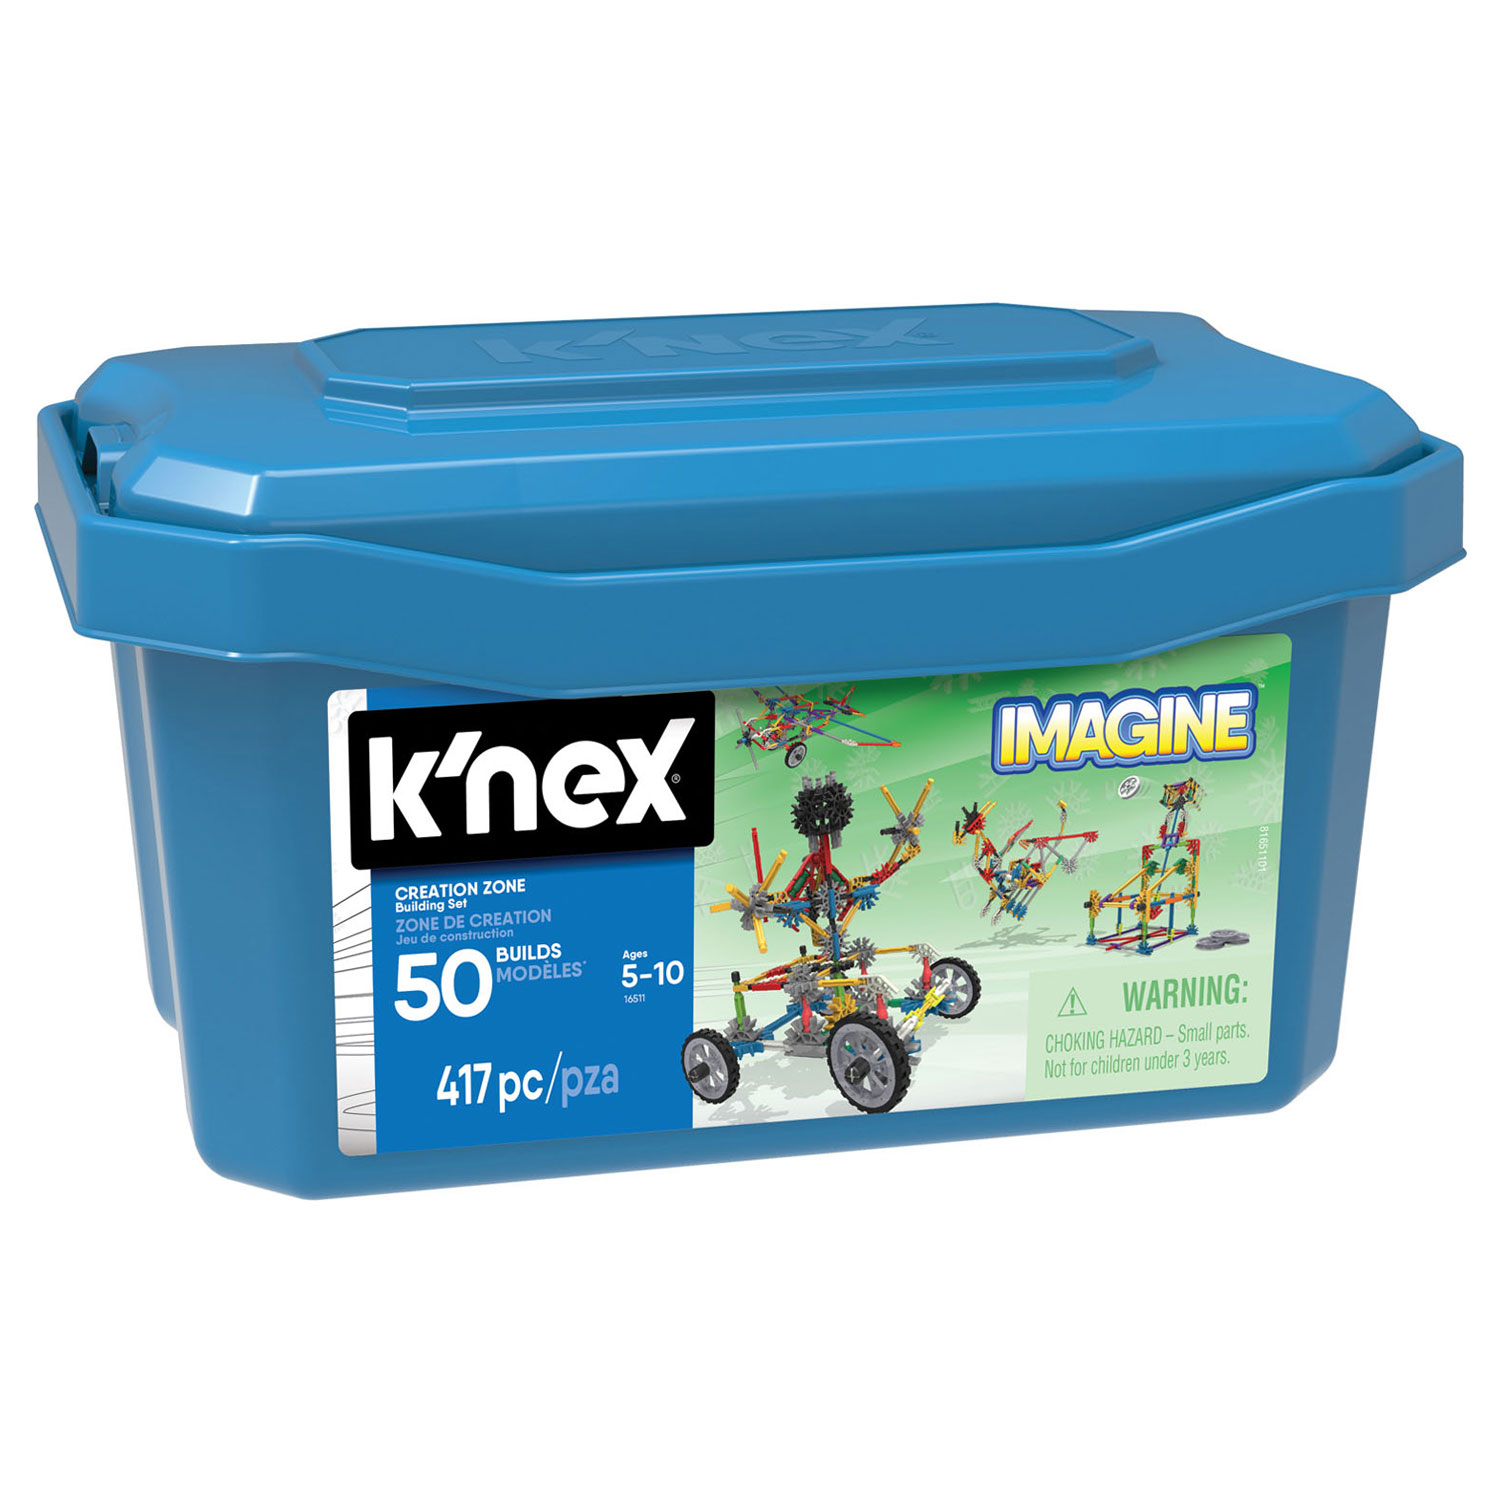 K'Nex Creation Zone Box, 50 Modellen